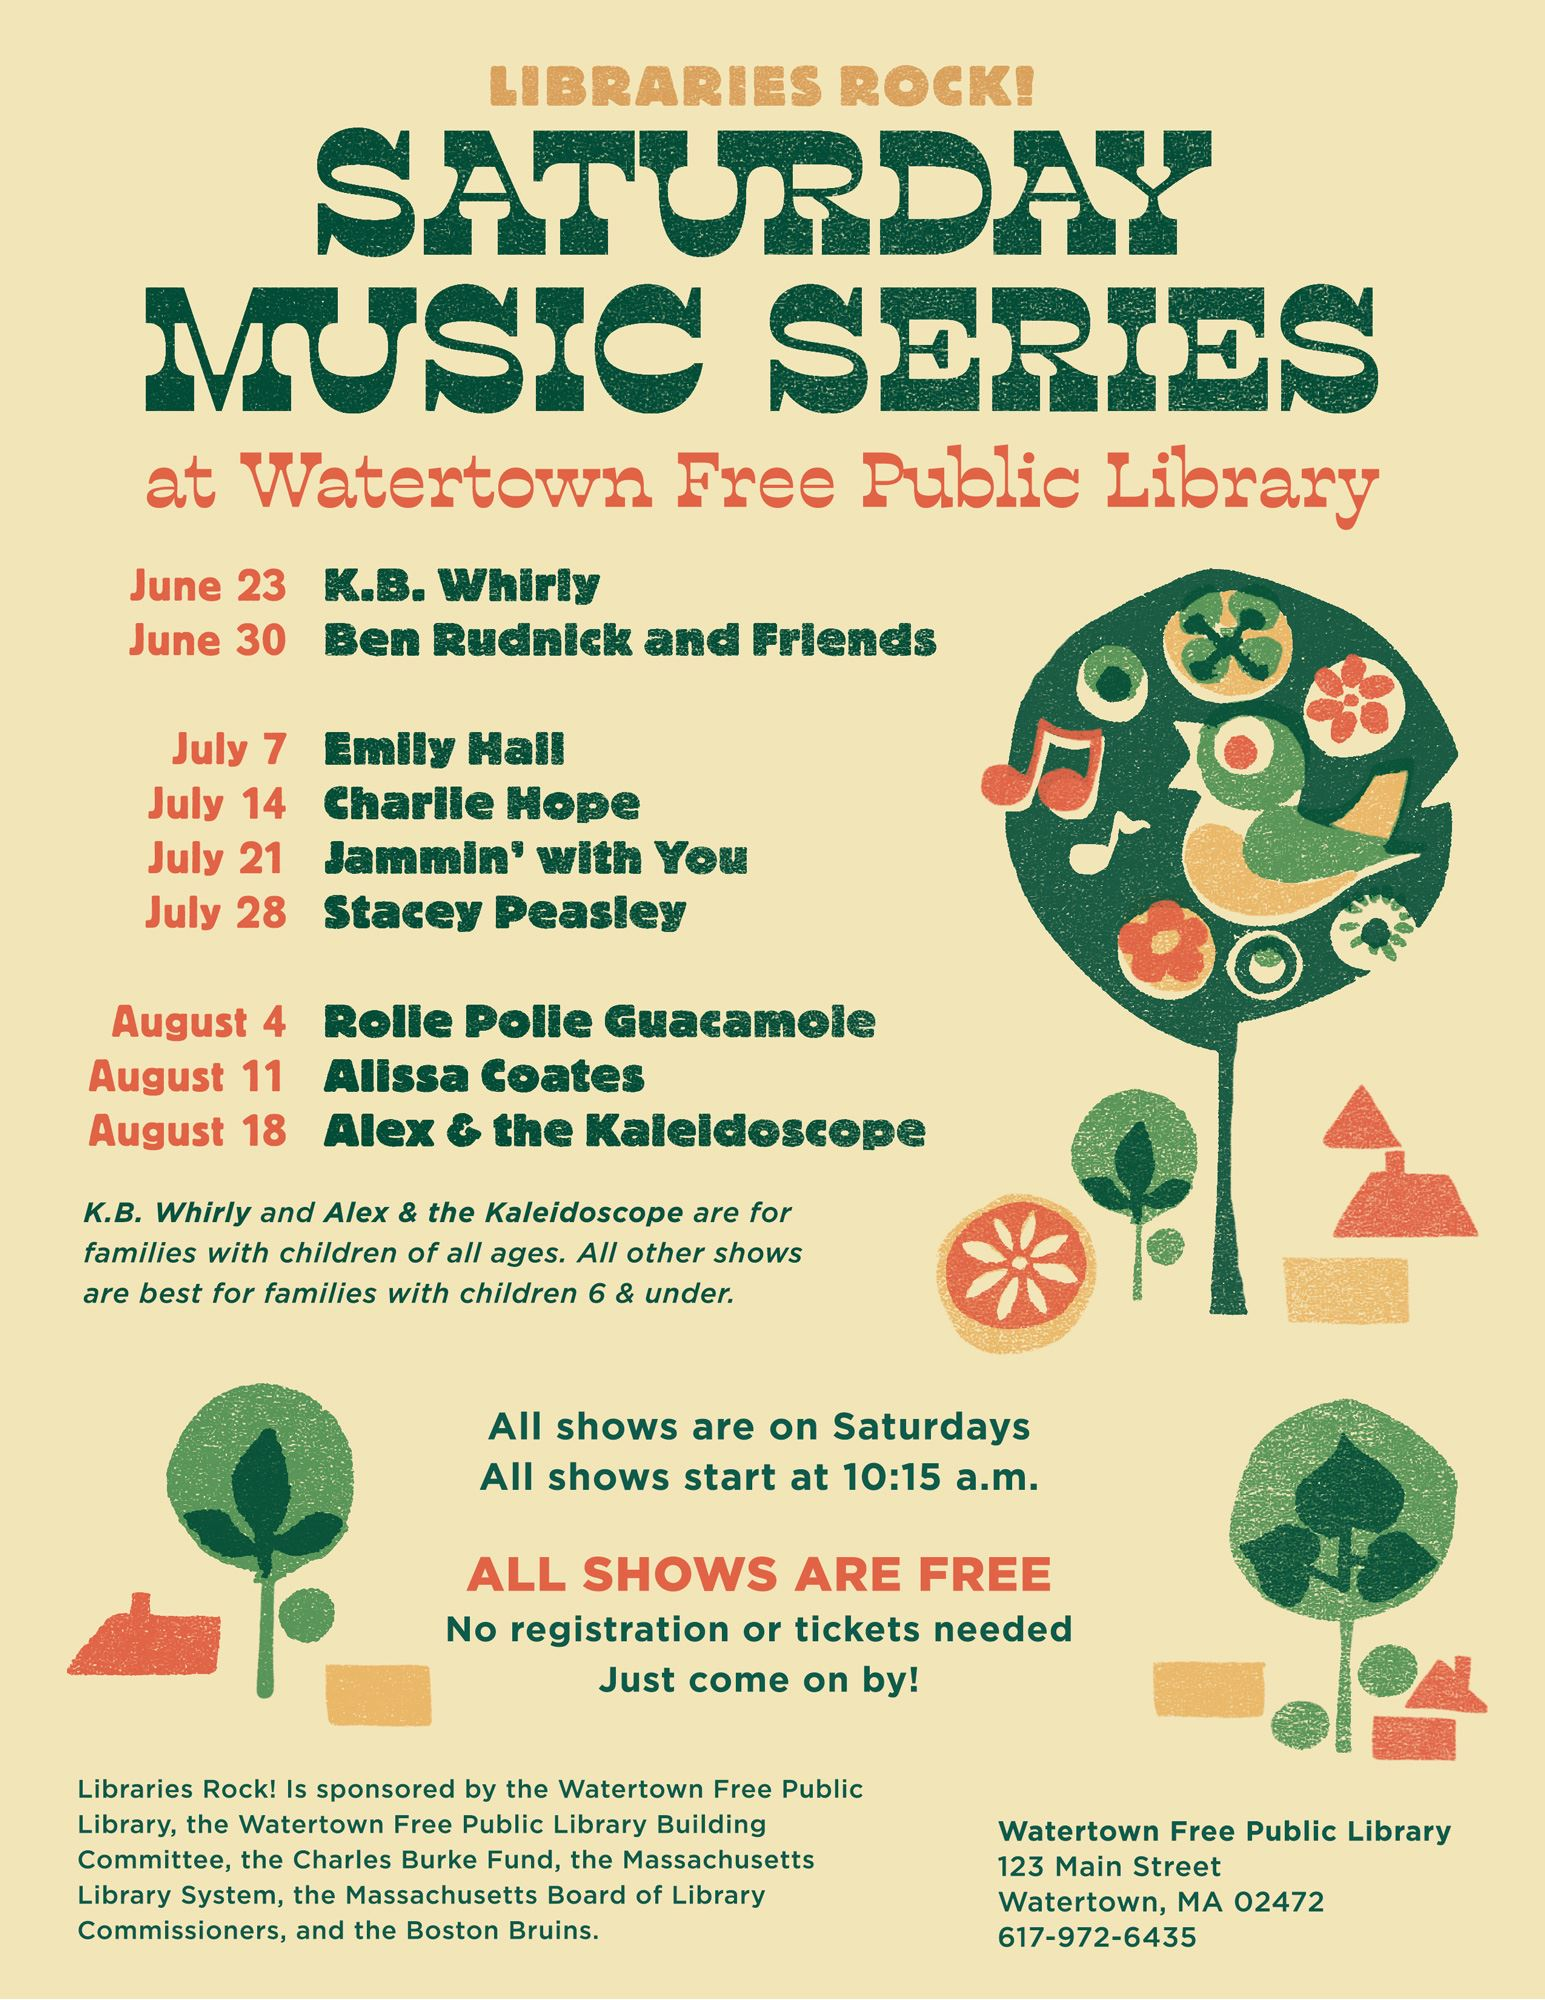 Saturday Music Series at Watertown Free Public Library. All shows start at 10:15 a.m. from June 23 u